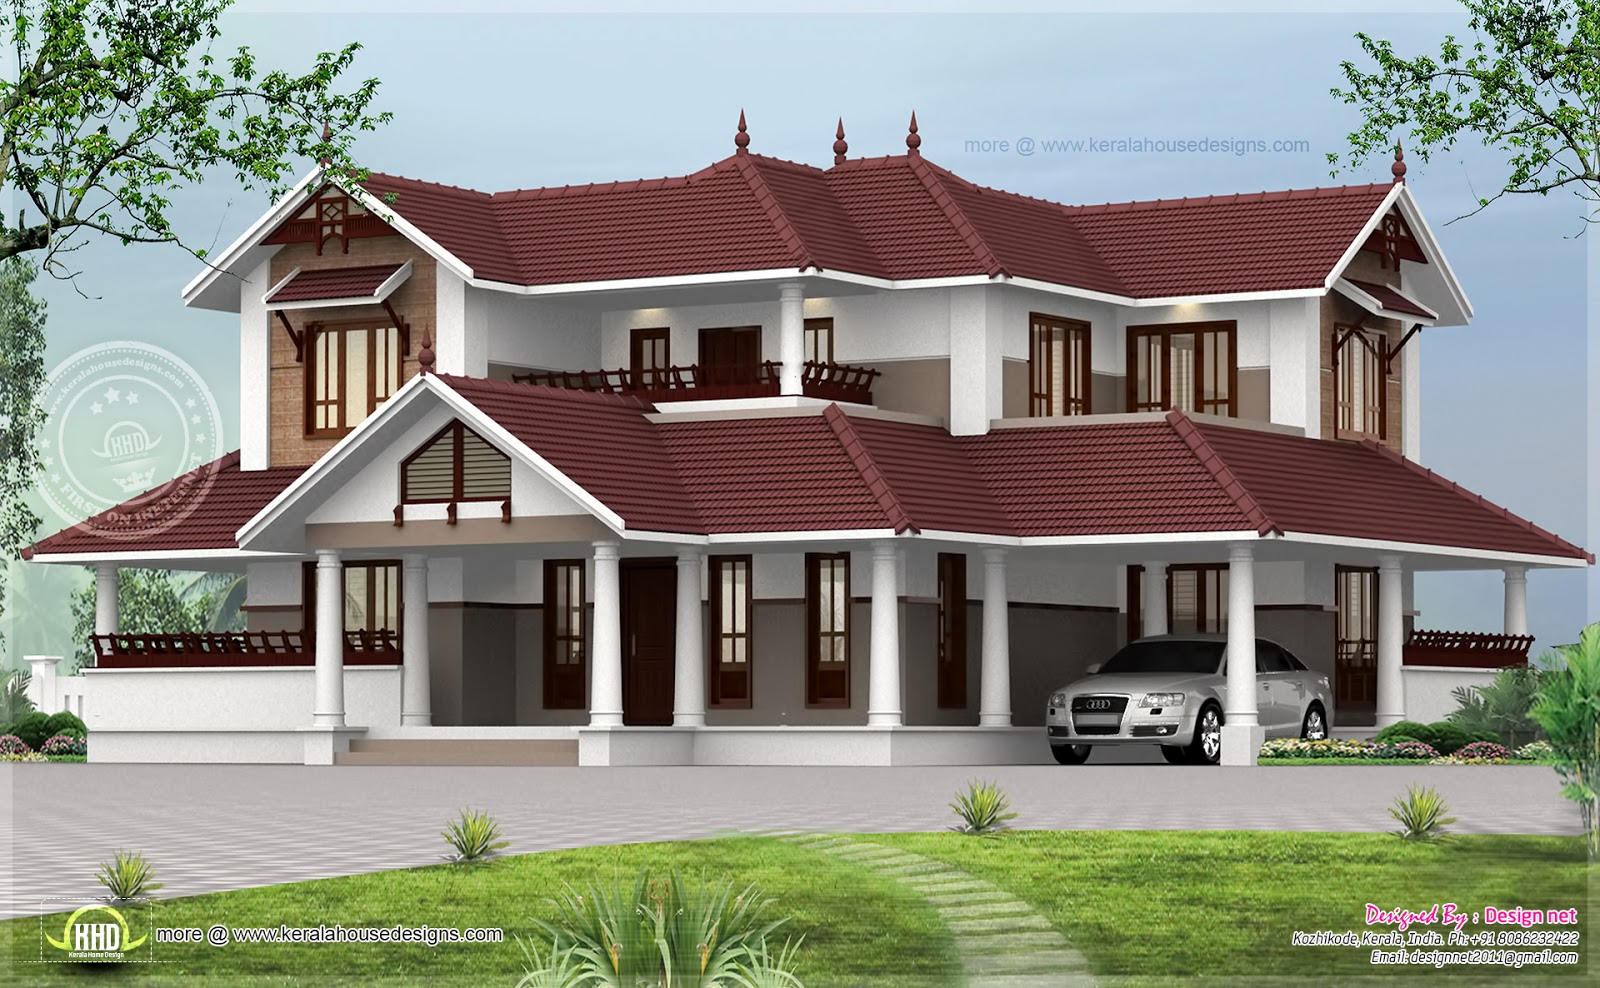 Kerala style sloping roof home exterior house design plans for Best house design usa